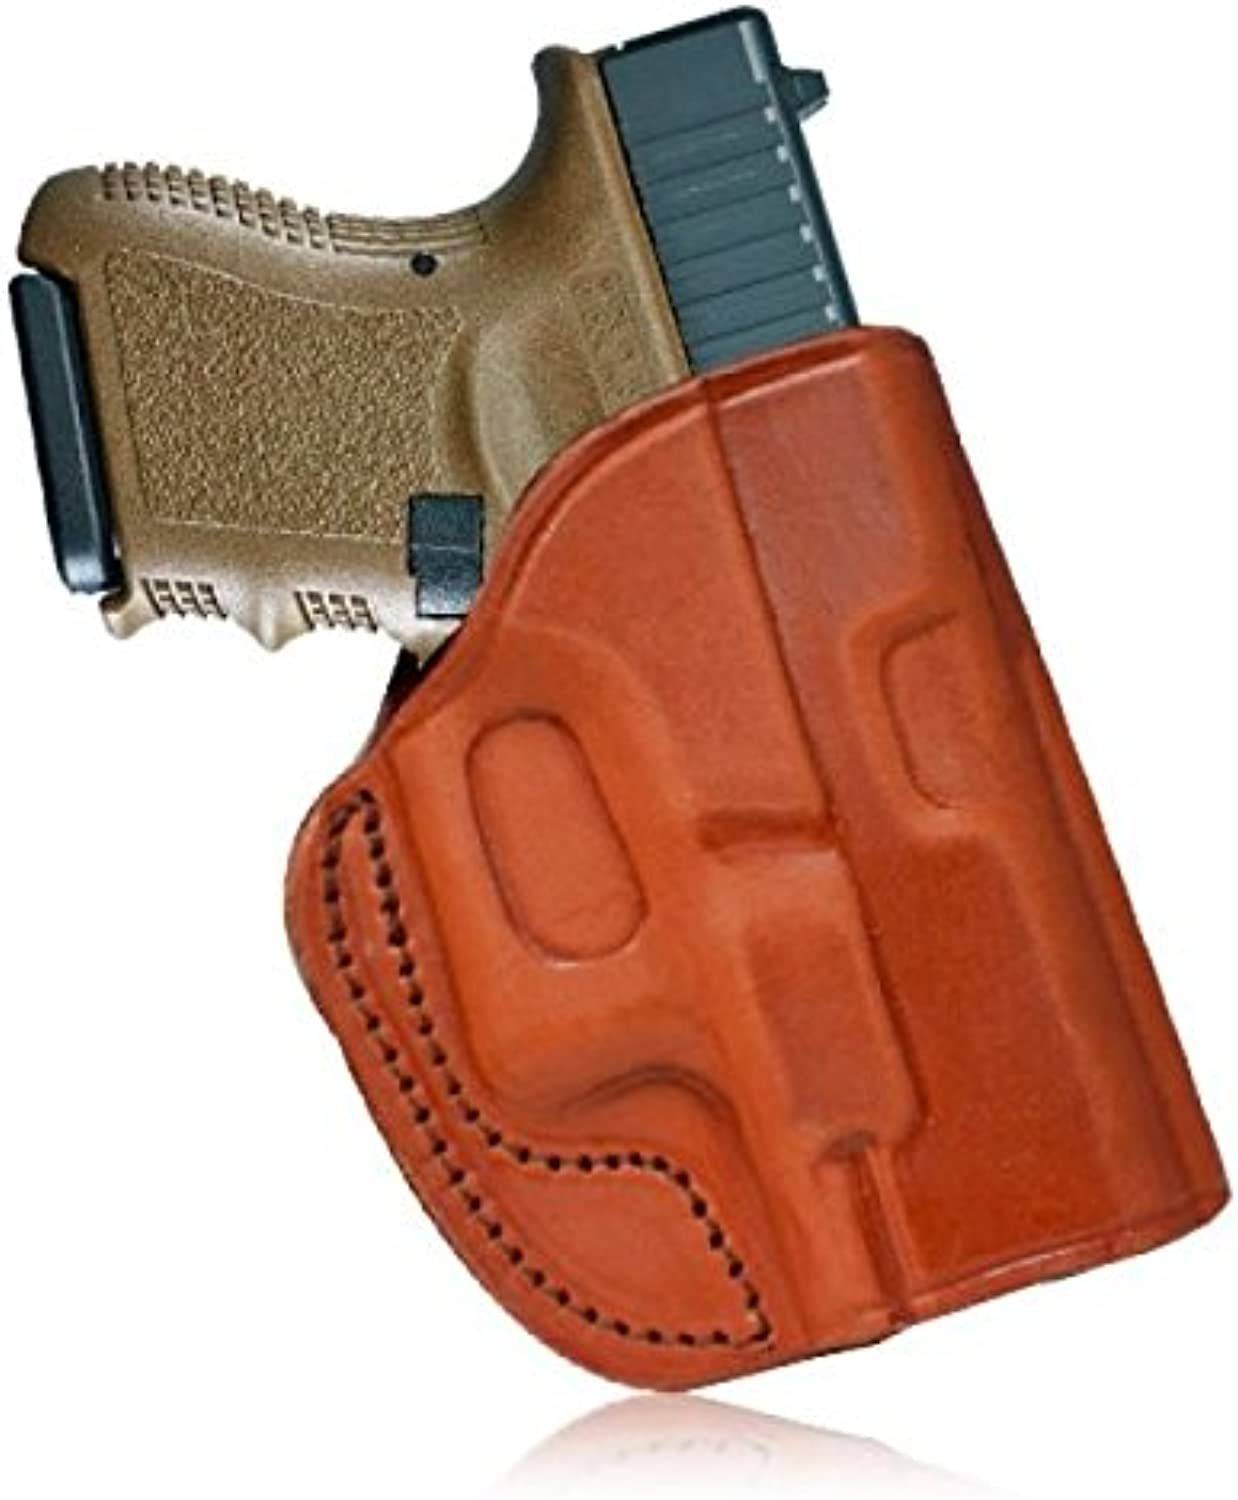 Tagua CDH31237 Beretta PX4 Storm SubCompact Cross Draw Holster, Brown, Right Hand